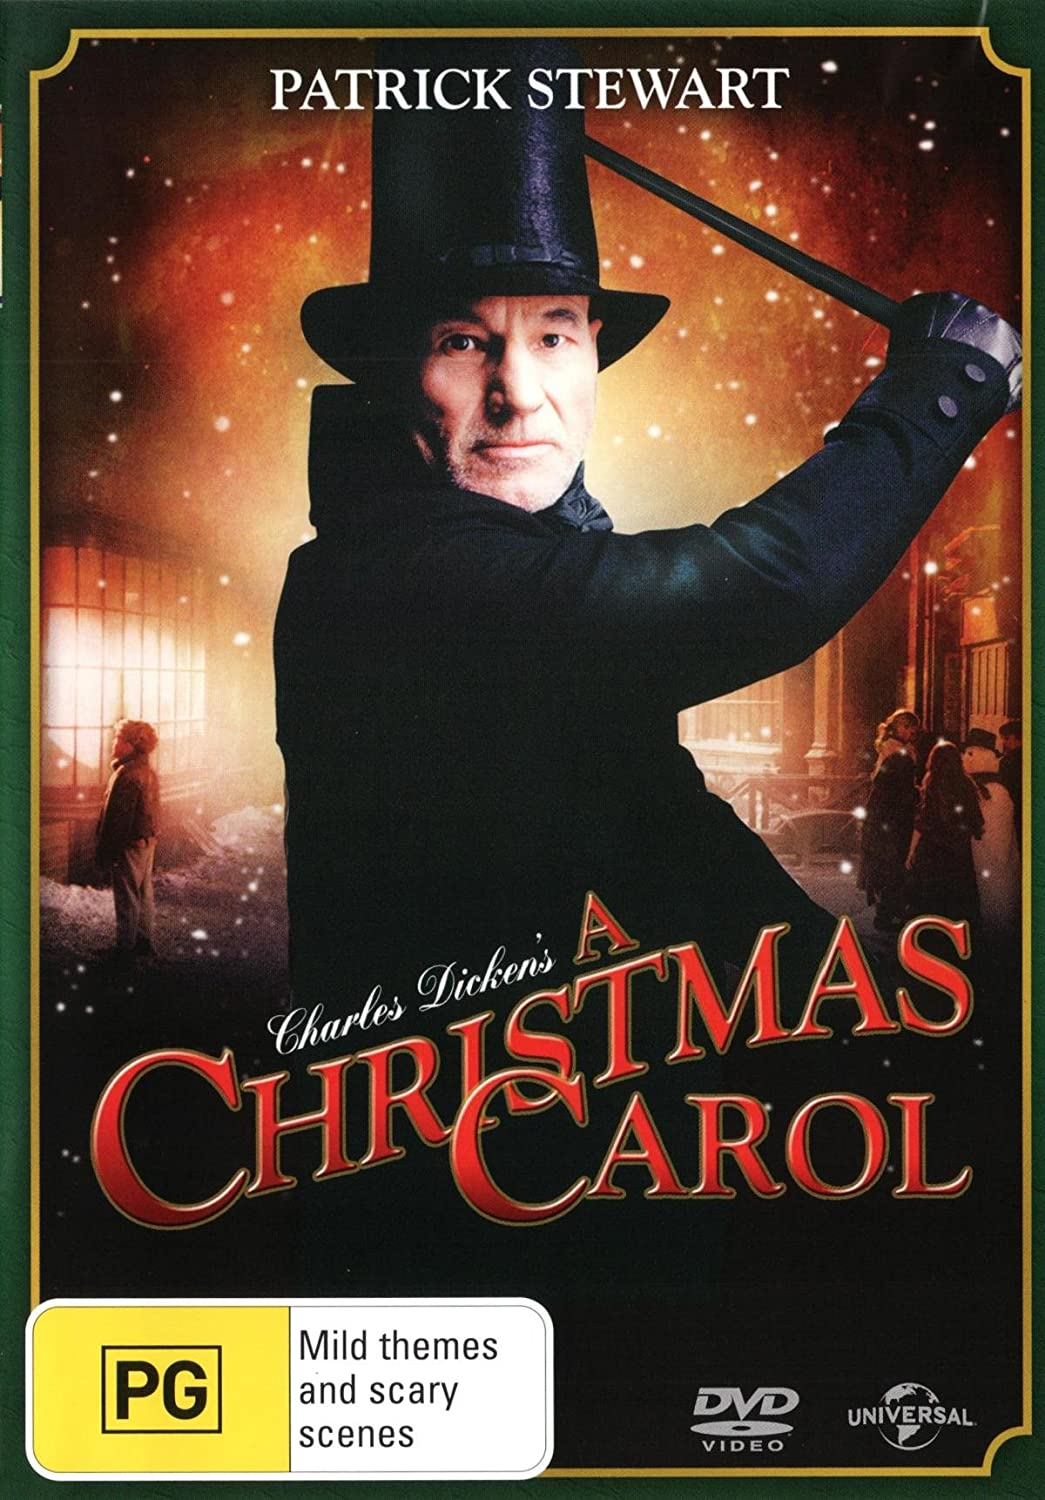 A Christmas Carol Patrick Stewart.Amazon Com A Christmas Carol Patrick Stewart Non Usa Format Pal Region 4 Import Australia Joel Grey Richard E Grant Ian Mcneice Patrick Stewart David Jones Movies Tv